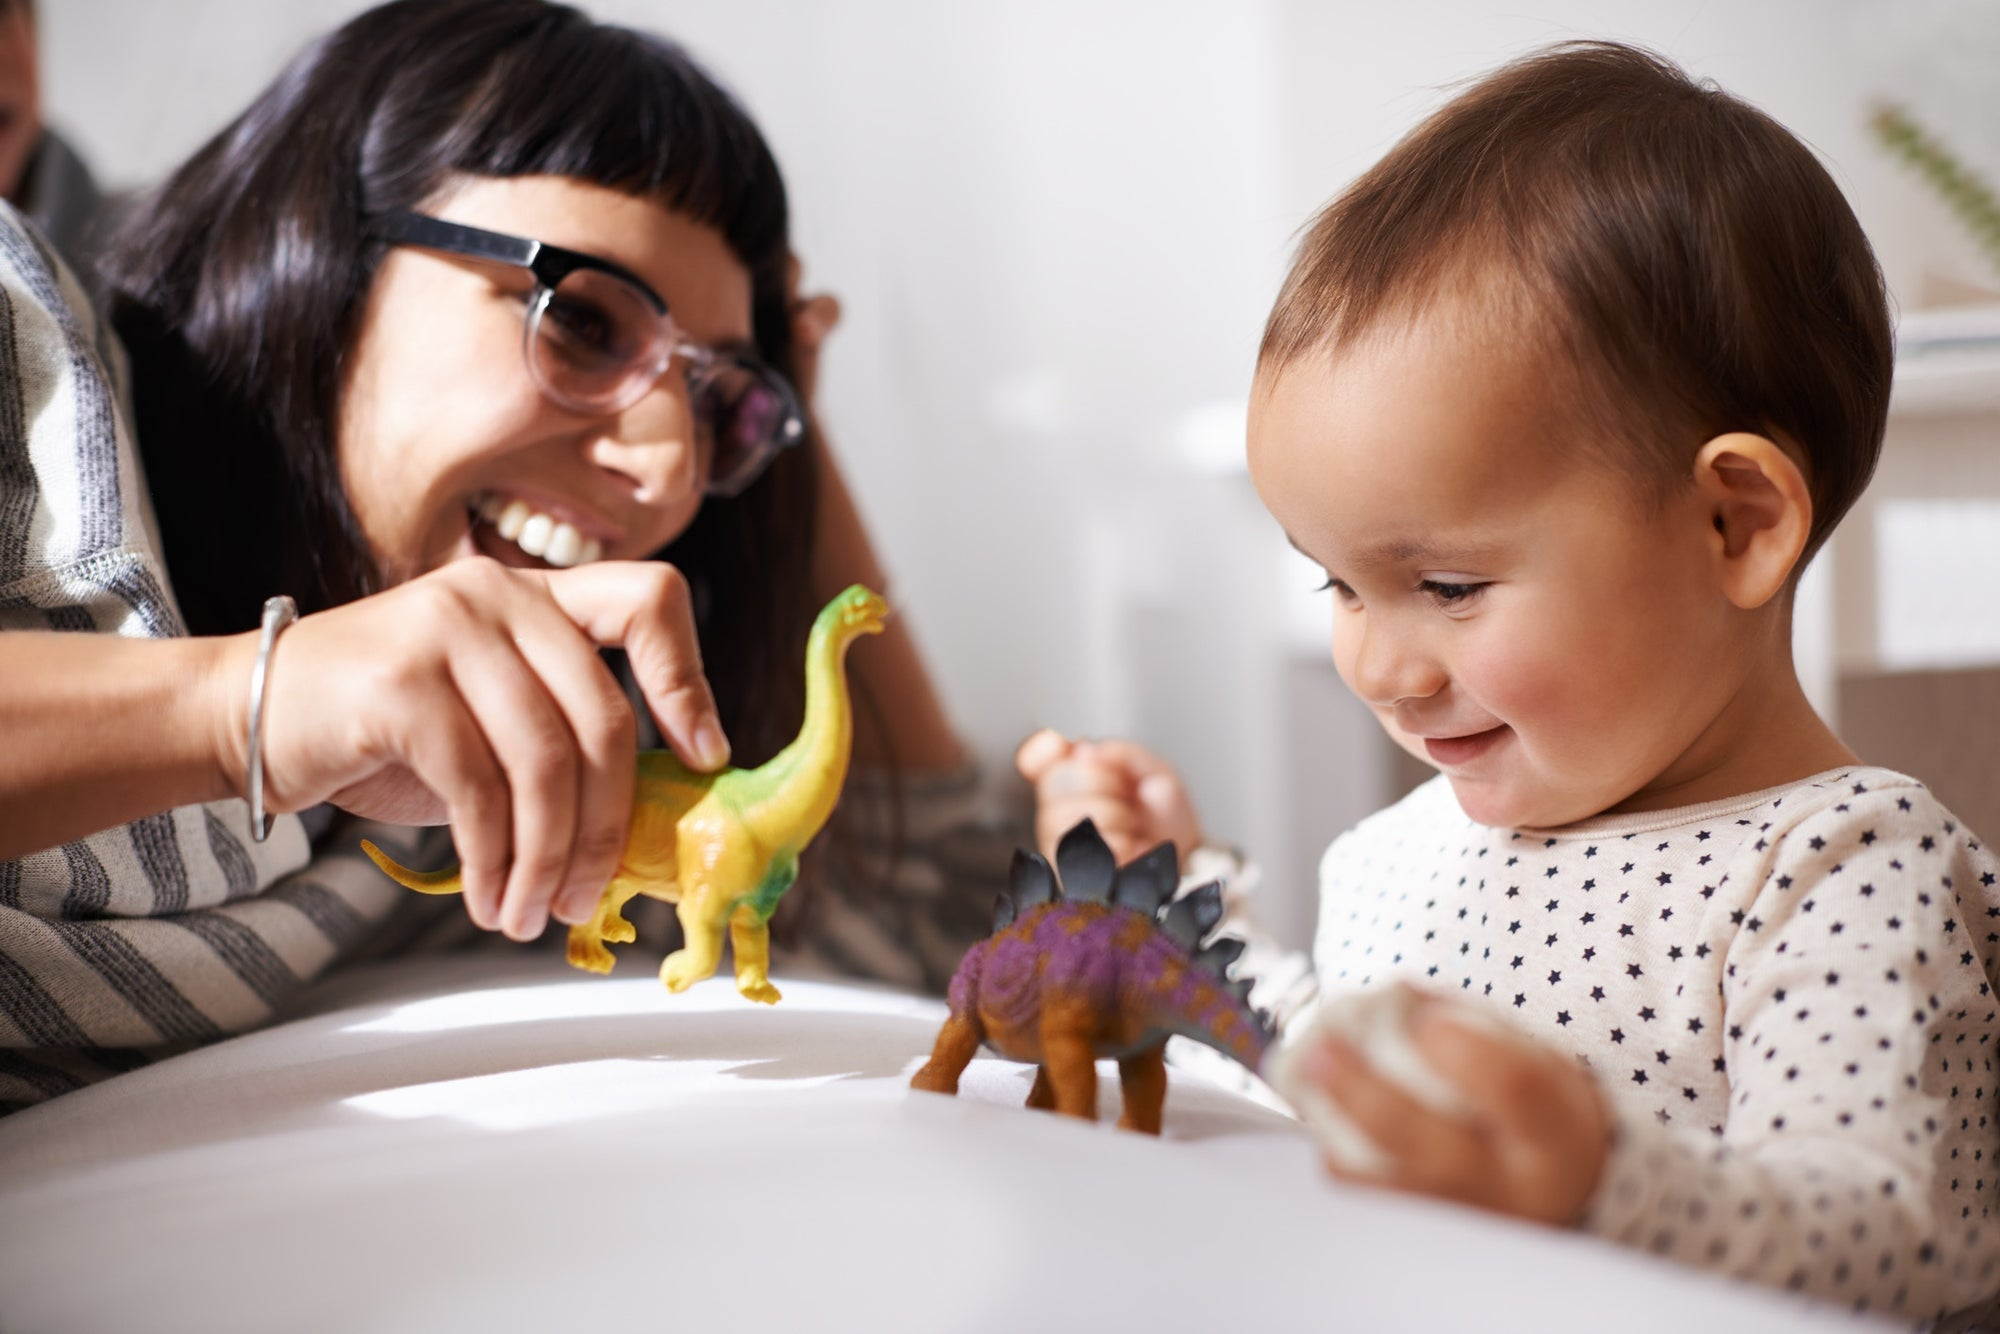 mom and child playing with colorful toy dinosaurs